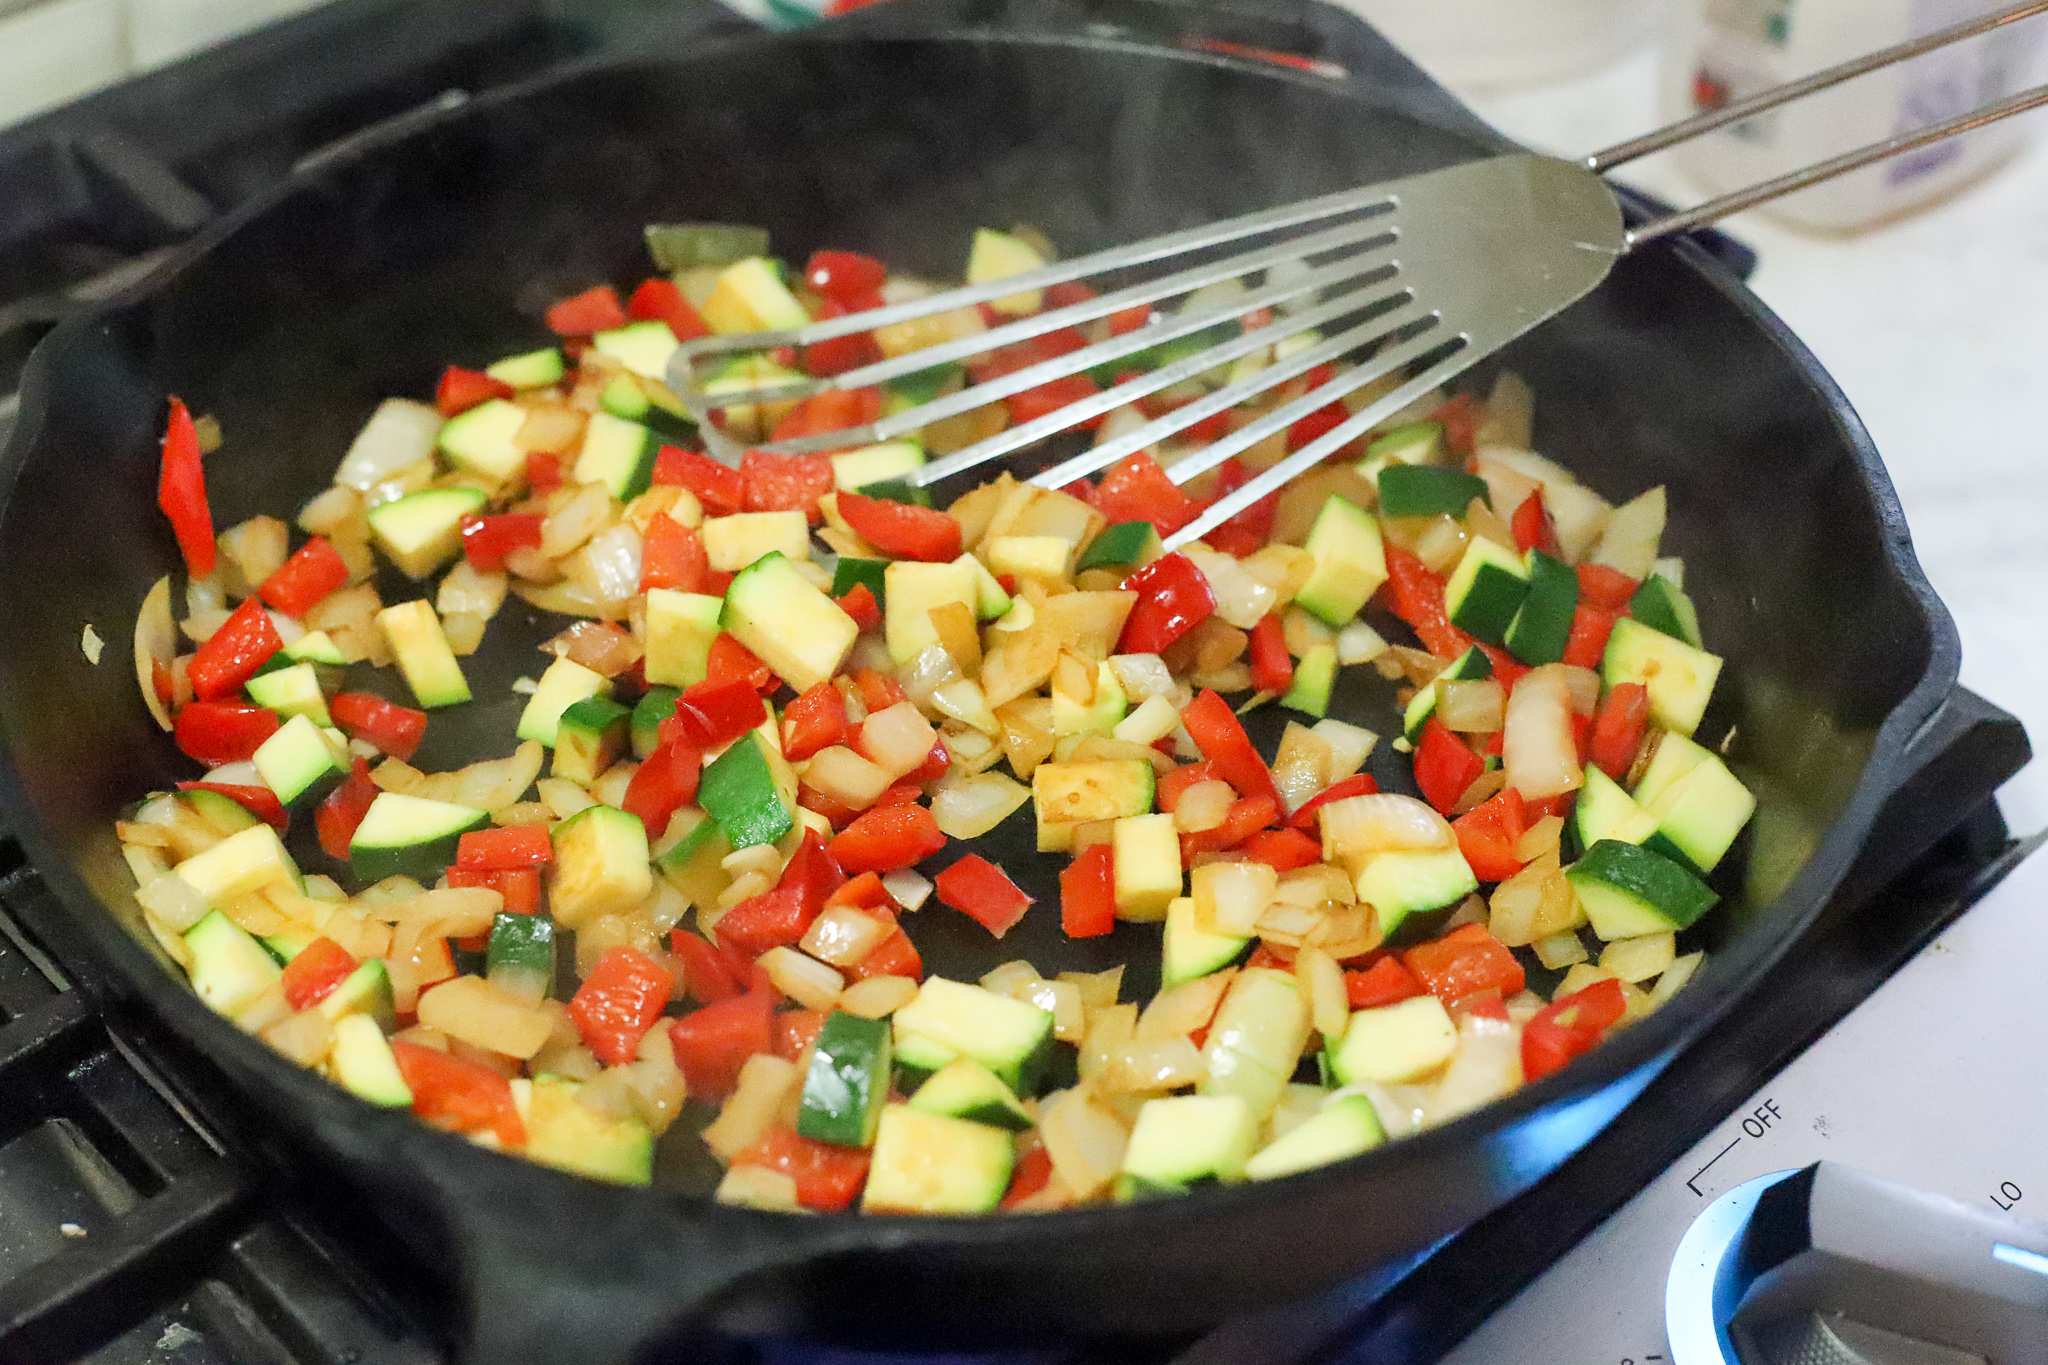 onions, peppers, and zucchini in frying pan